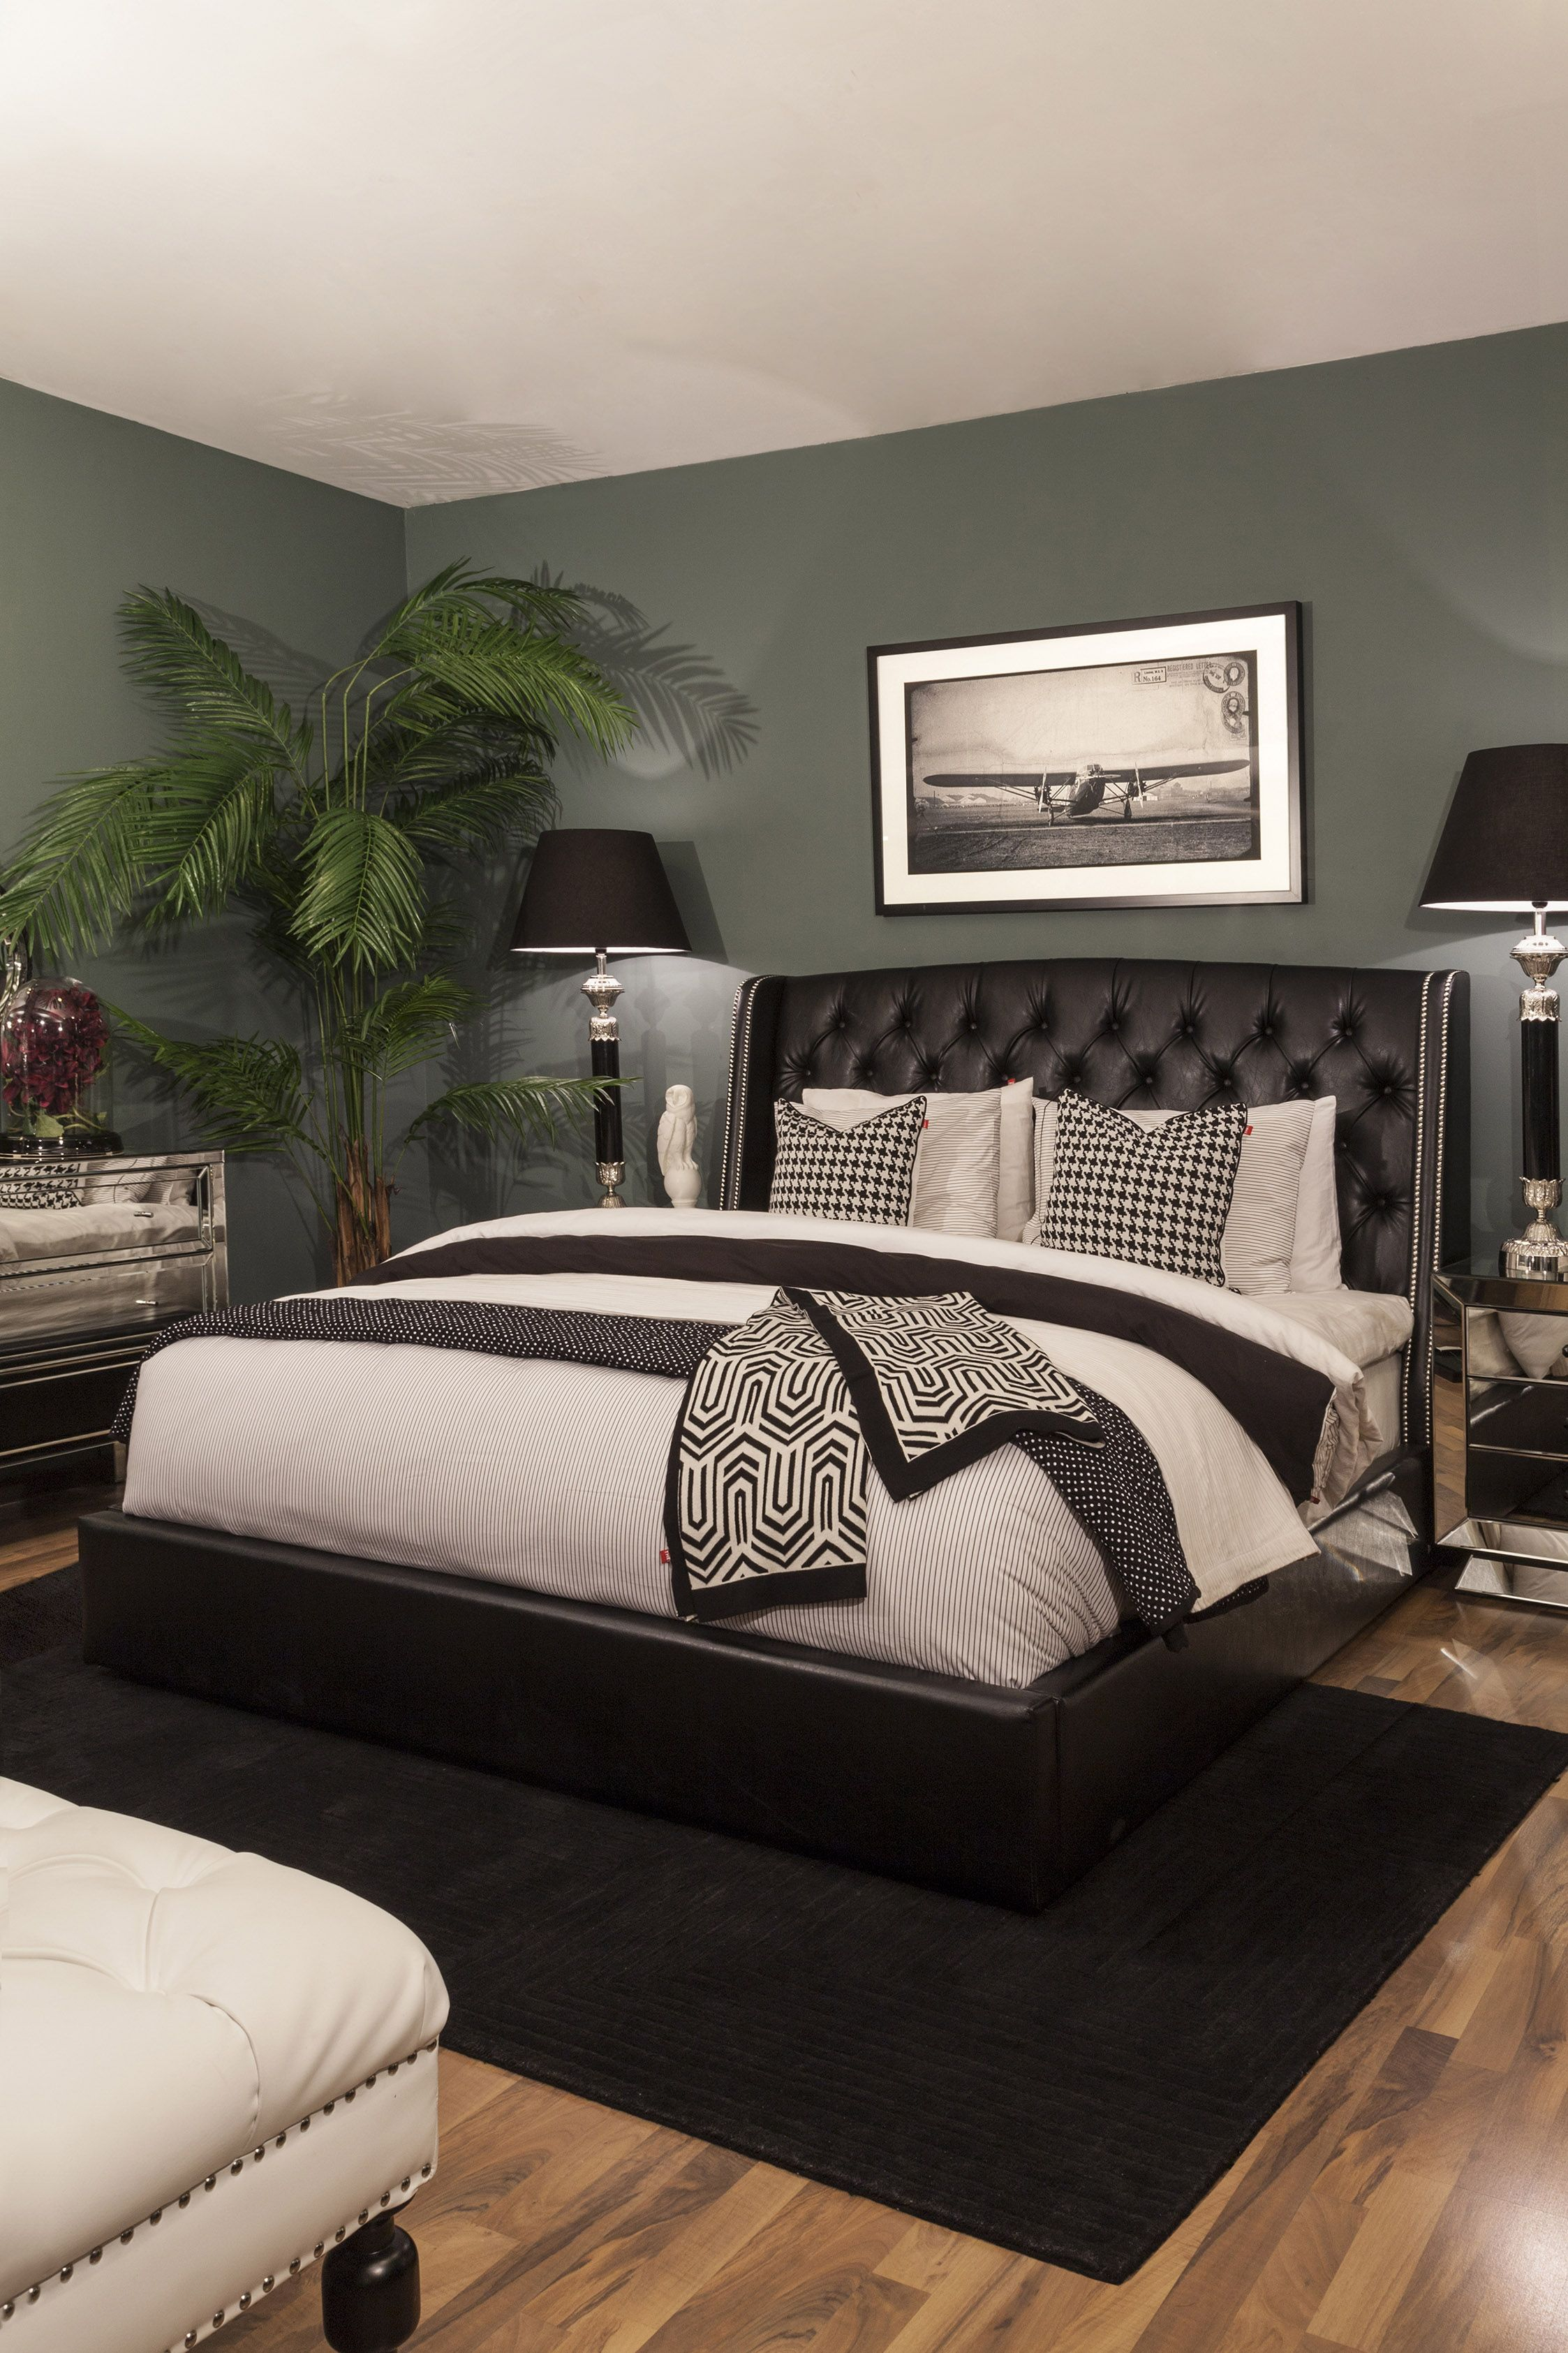 Bedroom Iconic This Clean Lined Decidedly Masculine Look